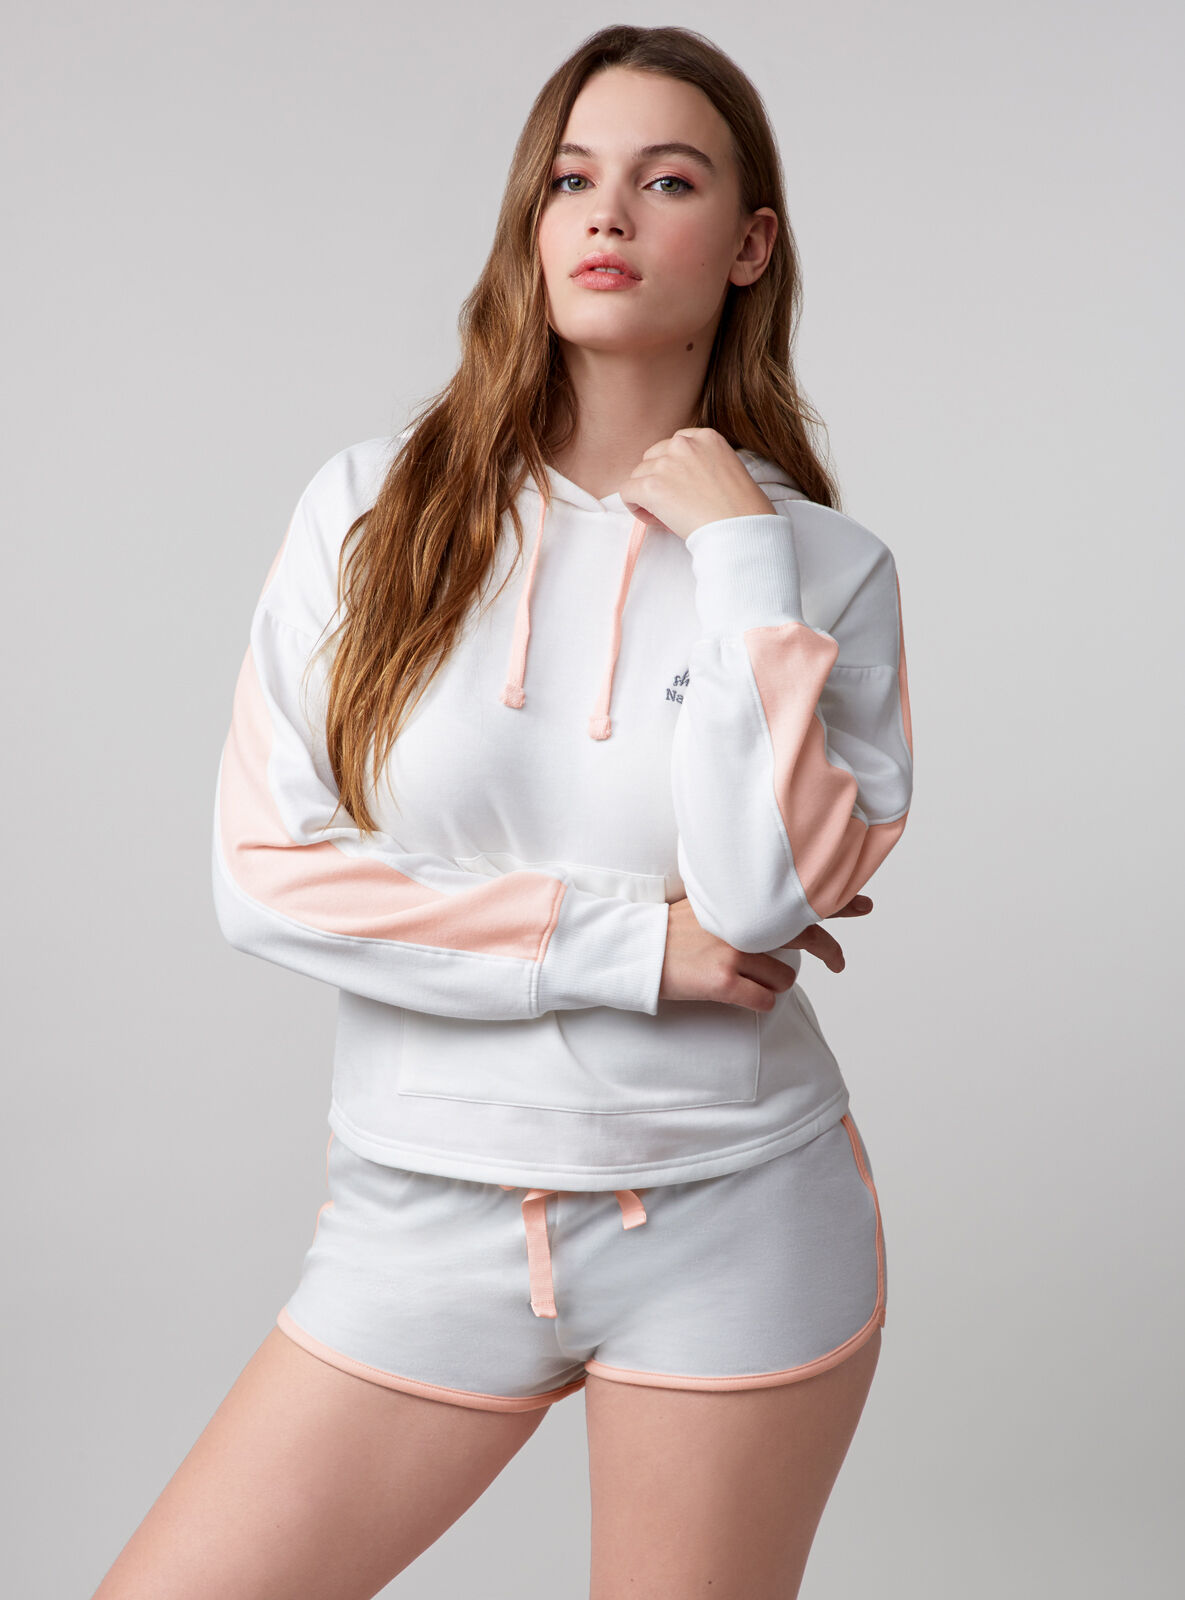 Shhhh nap time hoody and shorts set